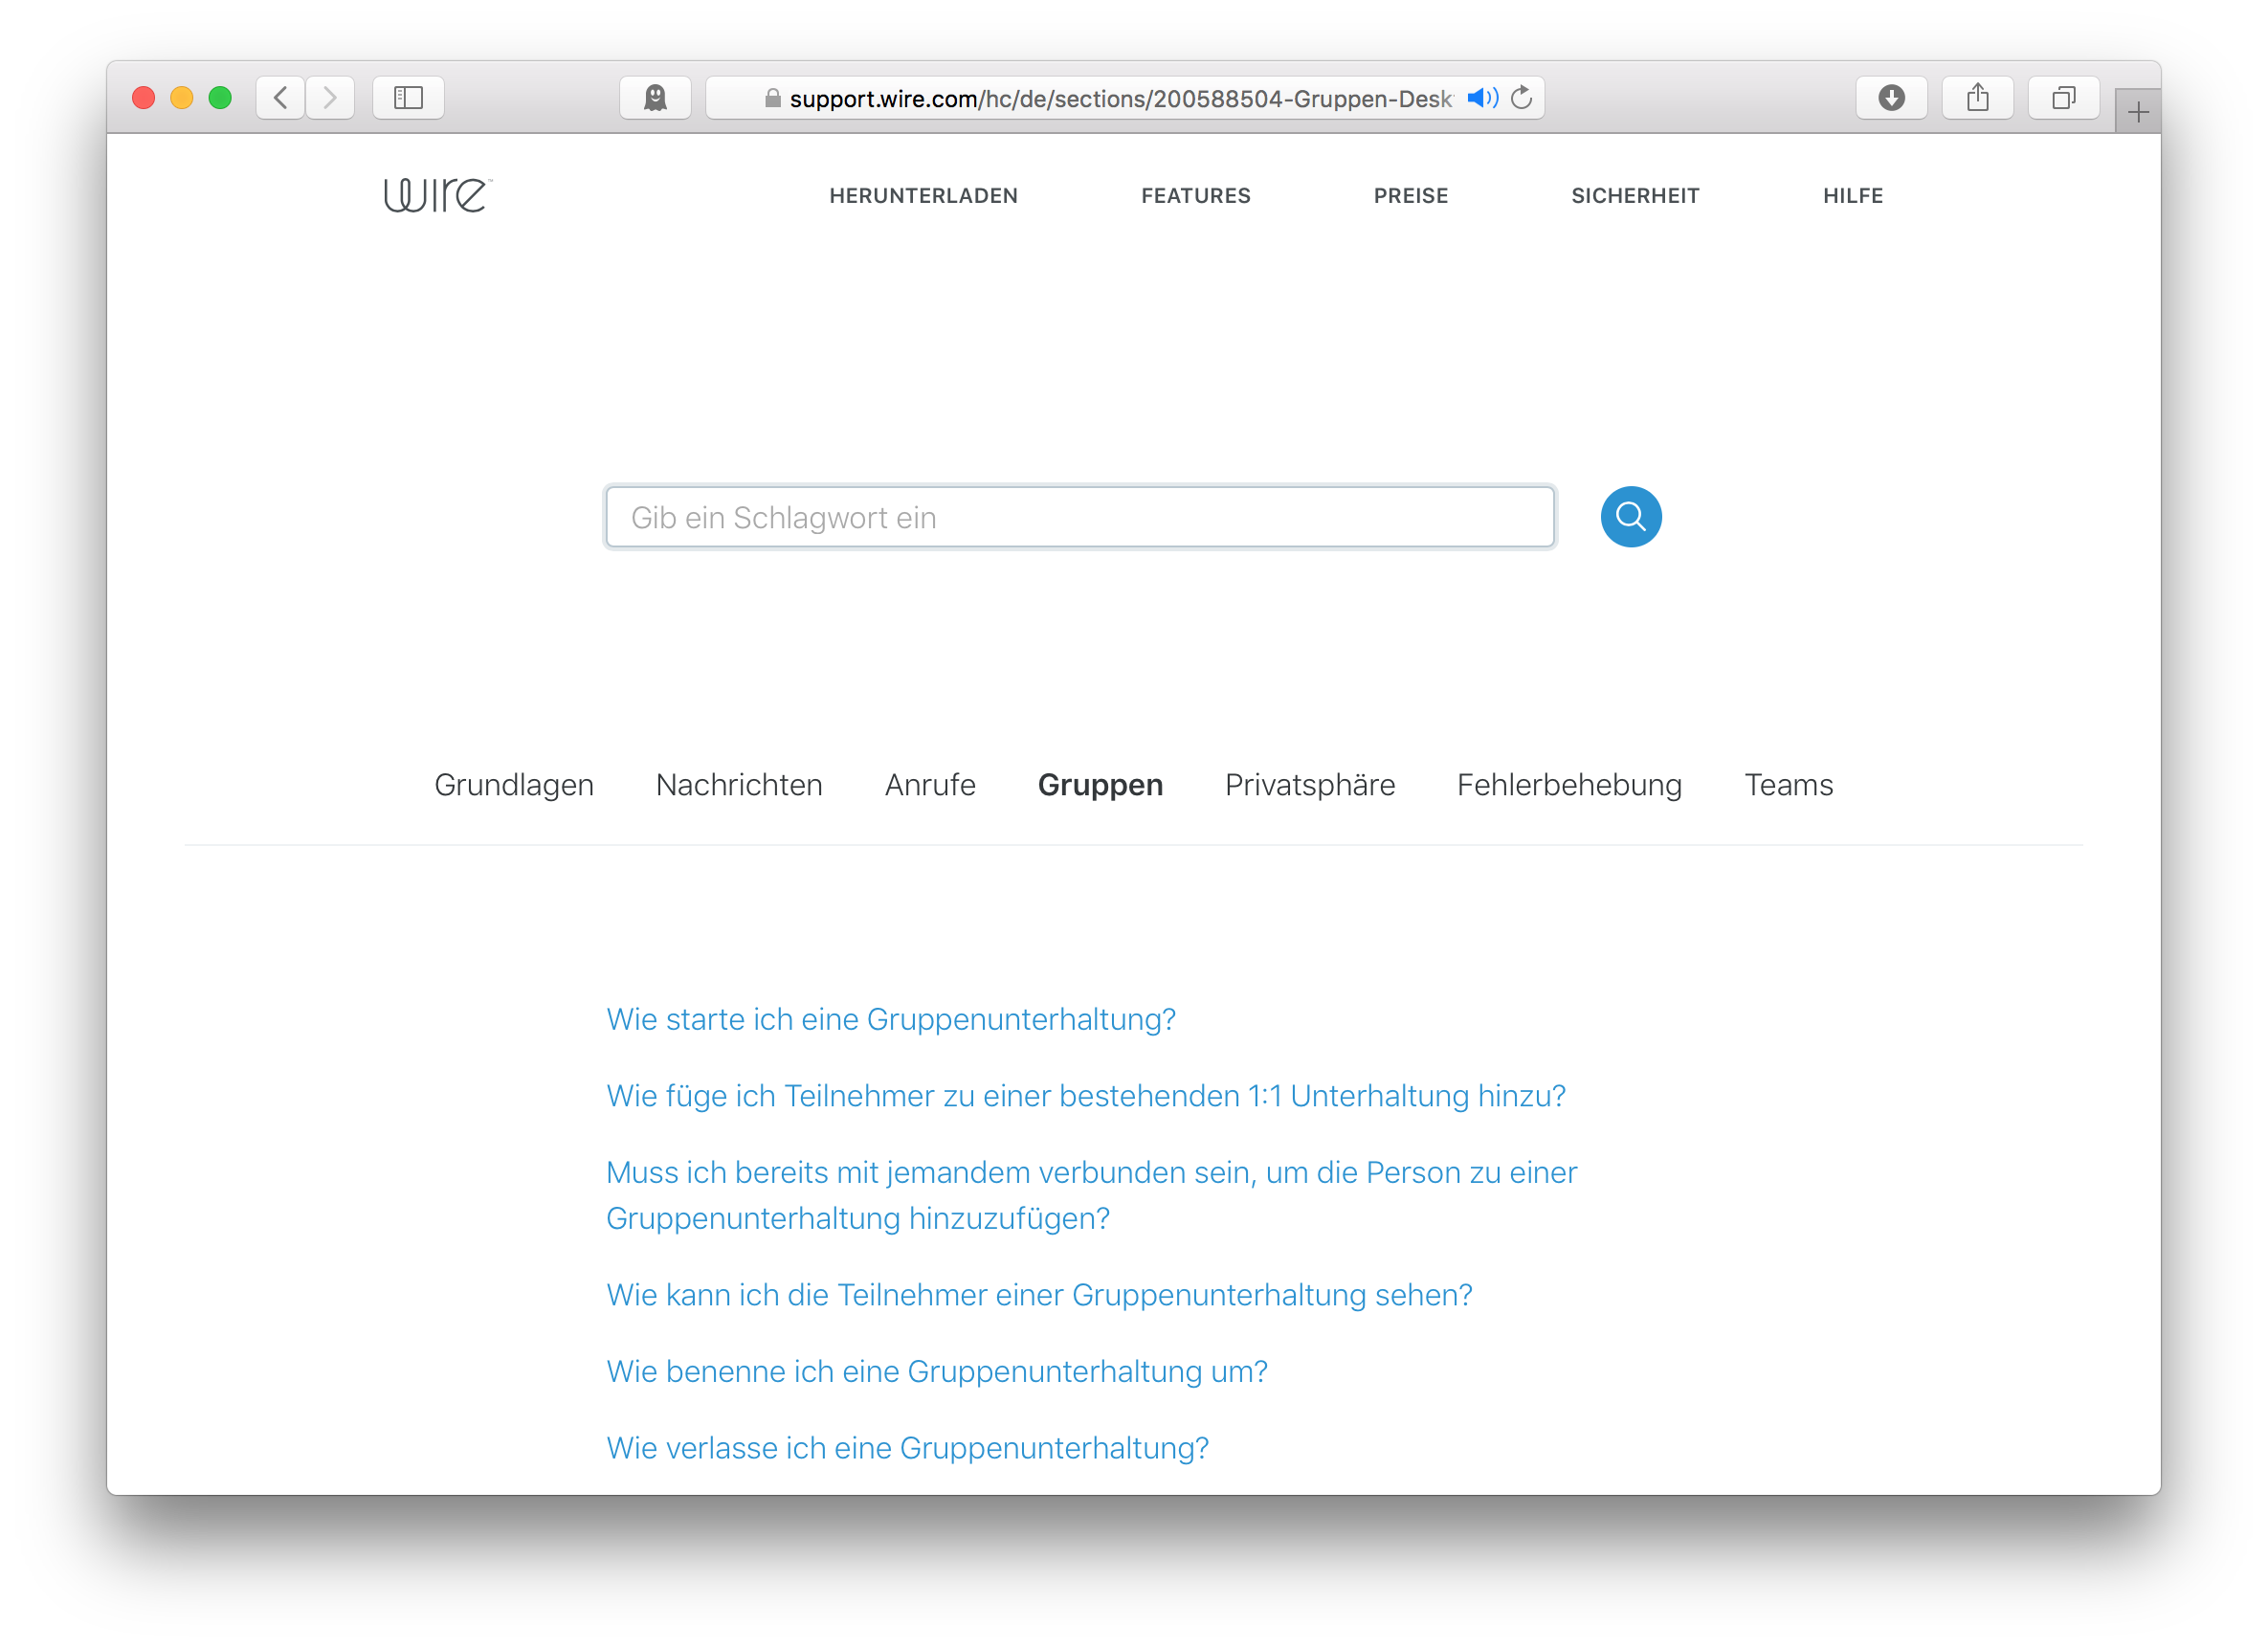 wire support site in german language